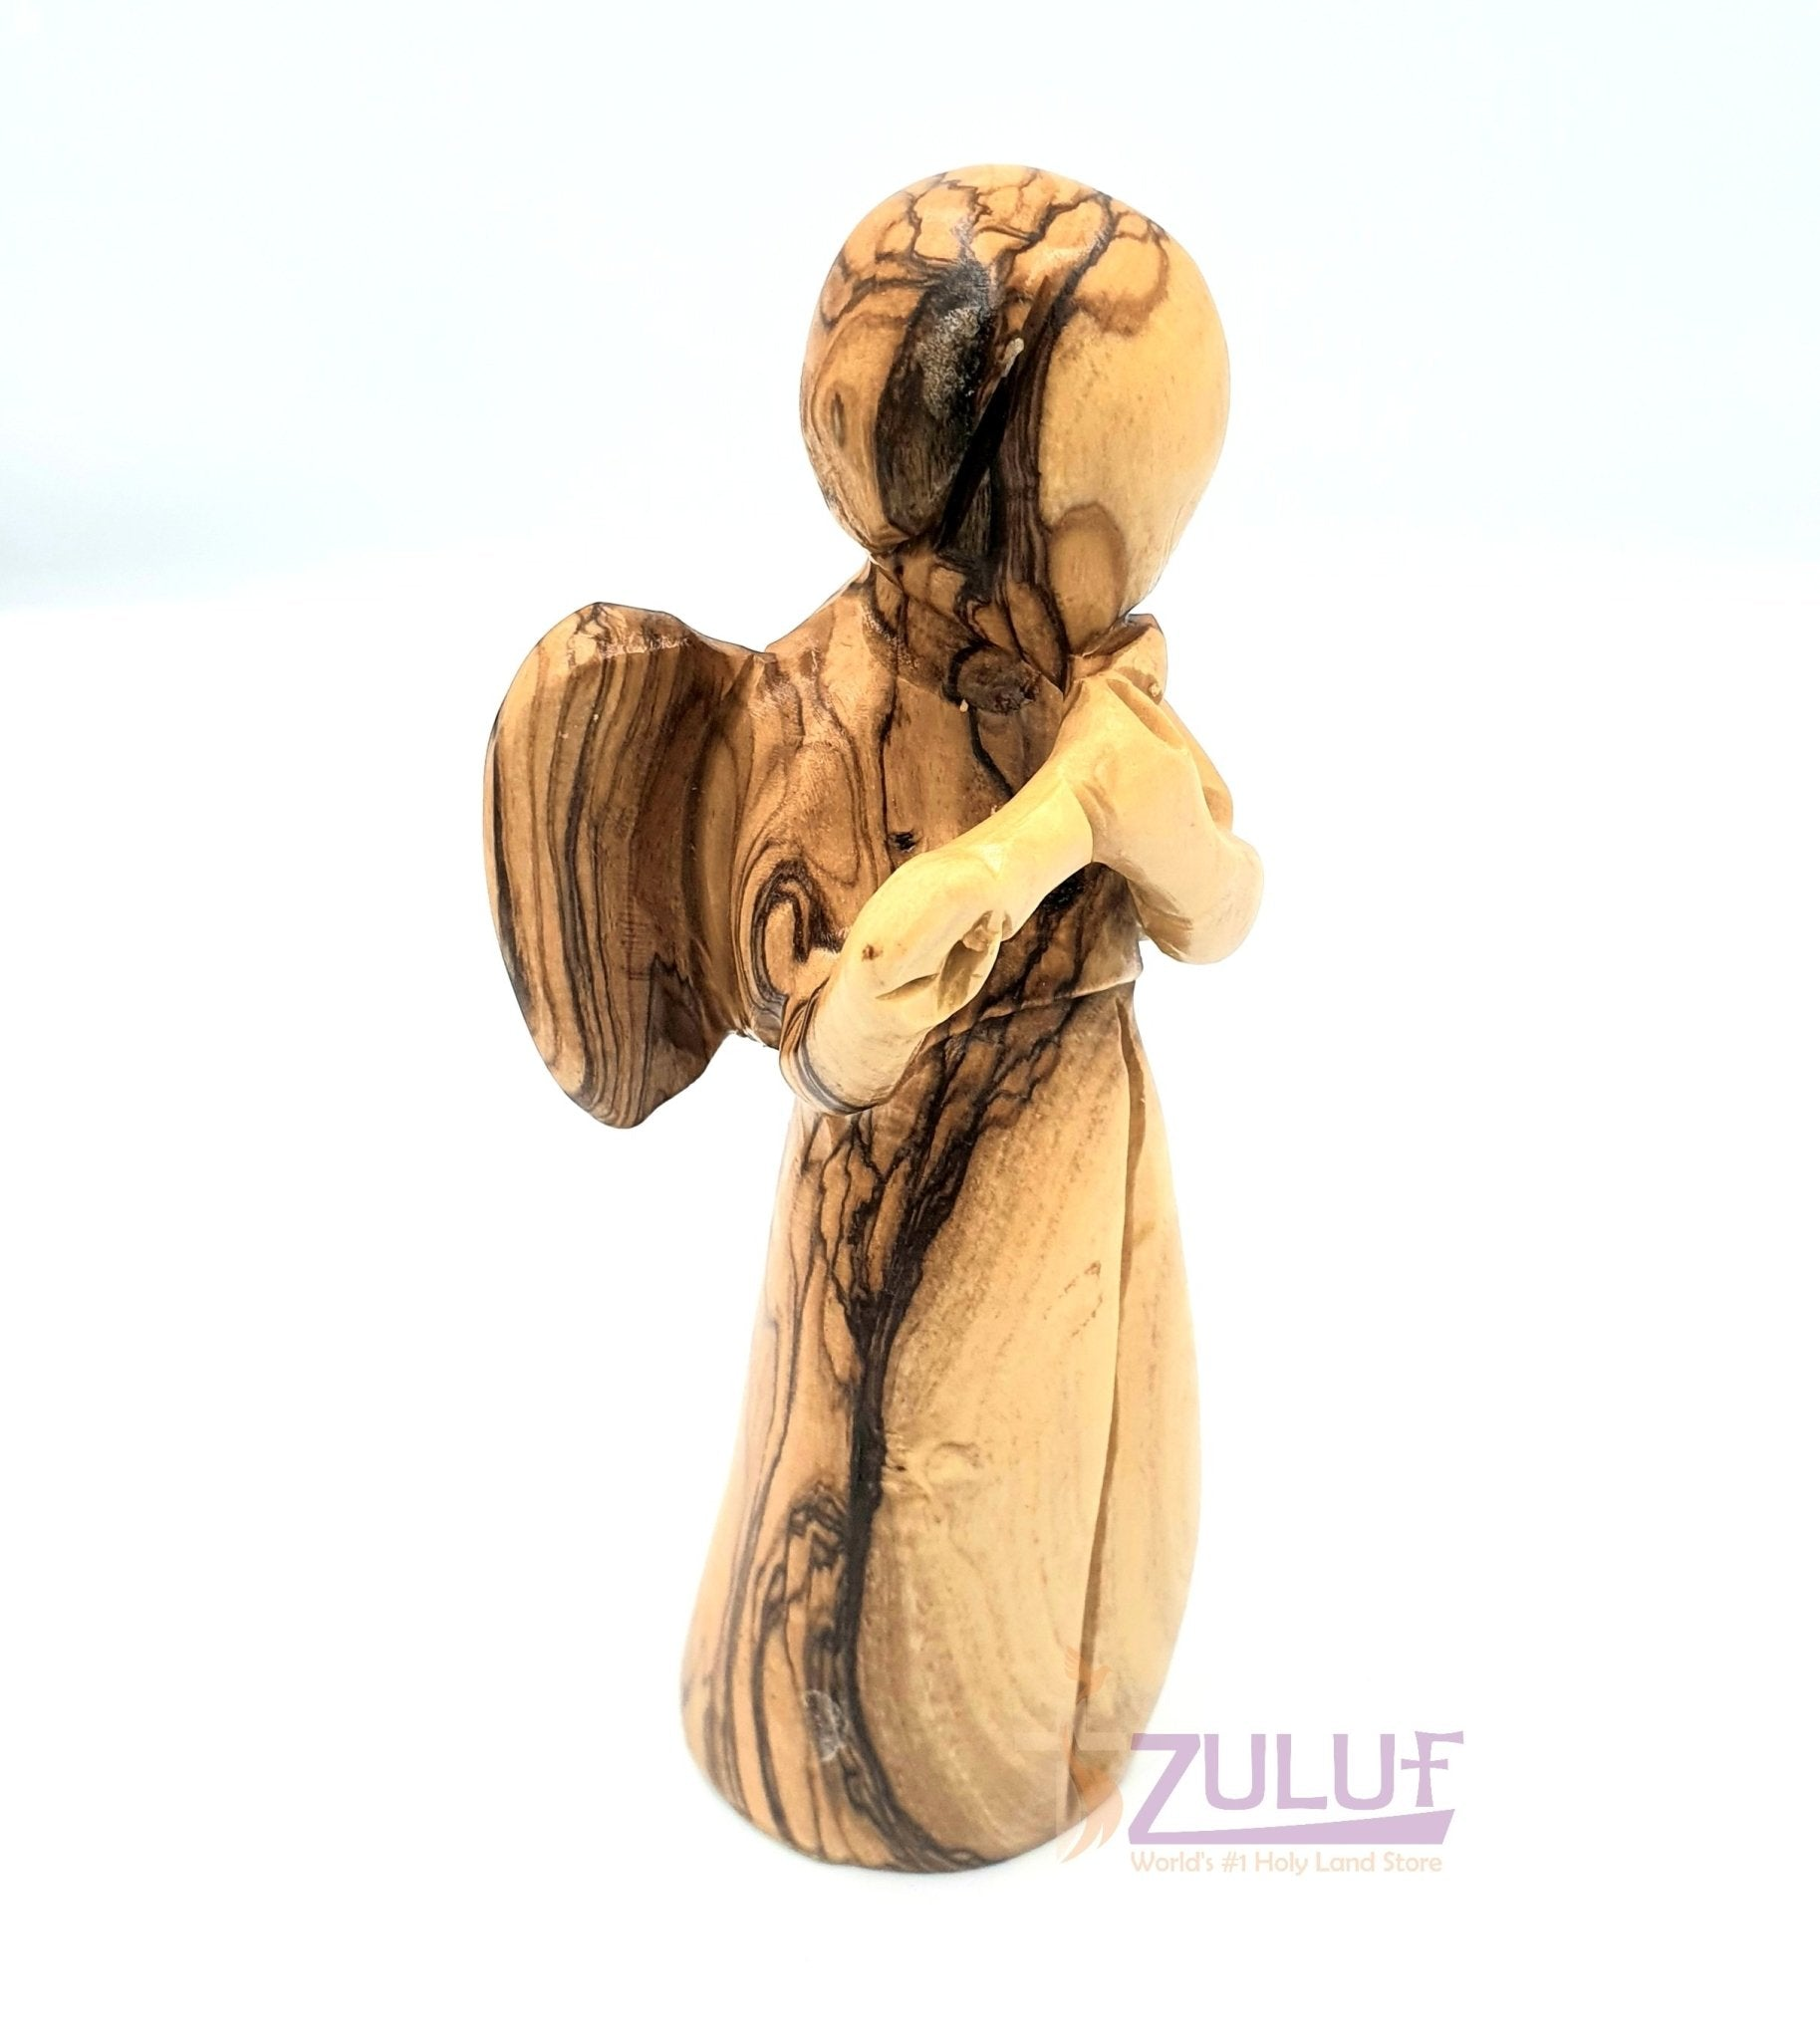 Zuluf Religious Gift Shop Olive Wood Angel Wood Carvings For Sale ANG007 - Zuluf